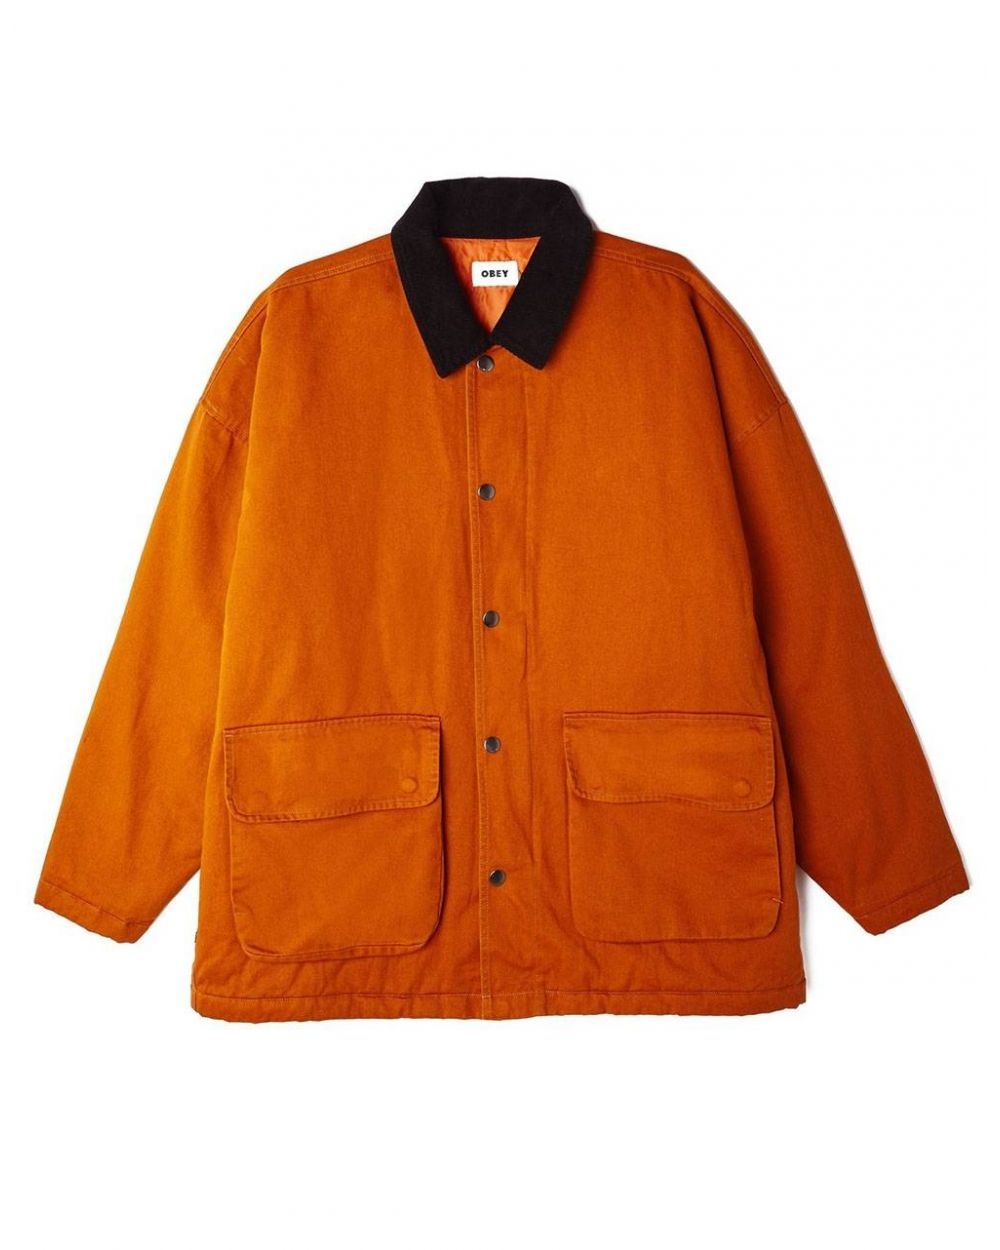 Obey far hunting jacket - pumpkin spice obey Jacket 199,00 €